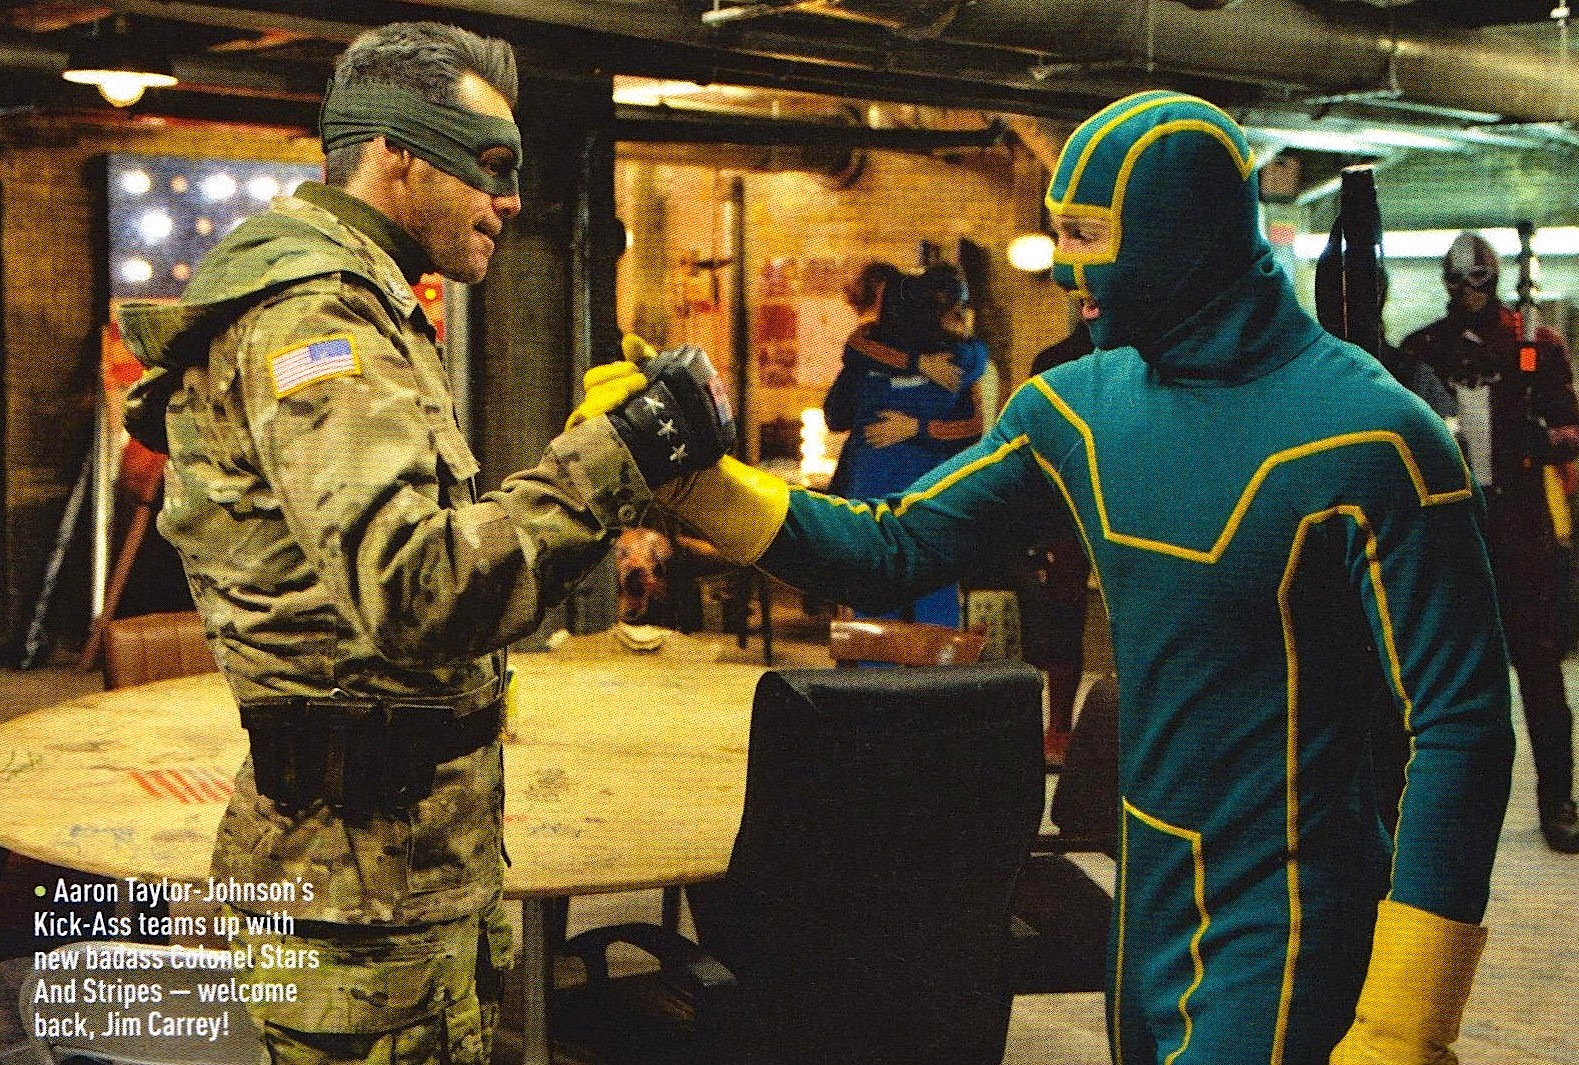 http://1.bp.blogspot.com/-4vyq7I3fS8M/UQar7SW61-I/AAAAAAAAamc/gAqwyYdienw/s1600/COLONEL-KICK-ASS-2_AARON-JOHNSON_JIM-CARREY_EMPIRE-SCAN_.jpeg